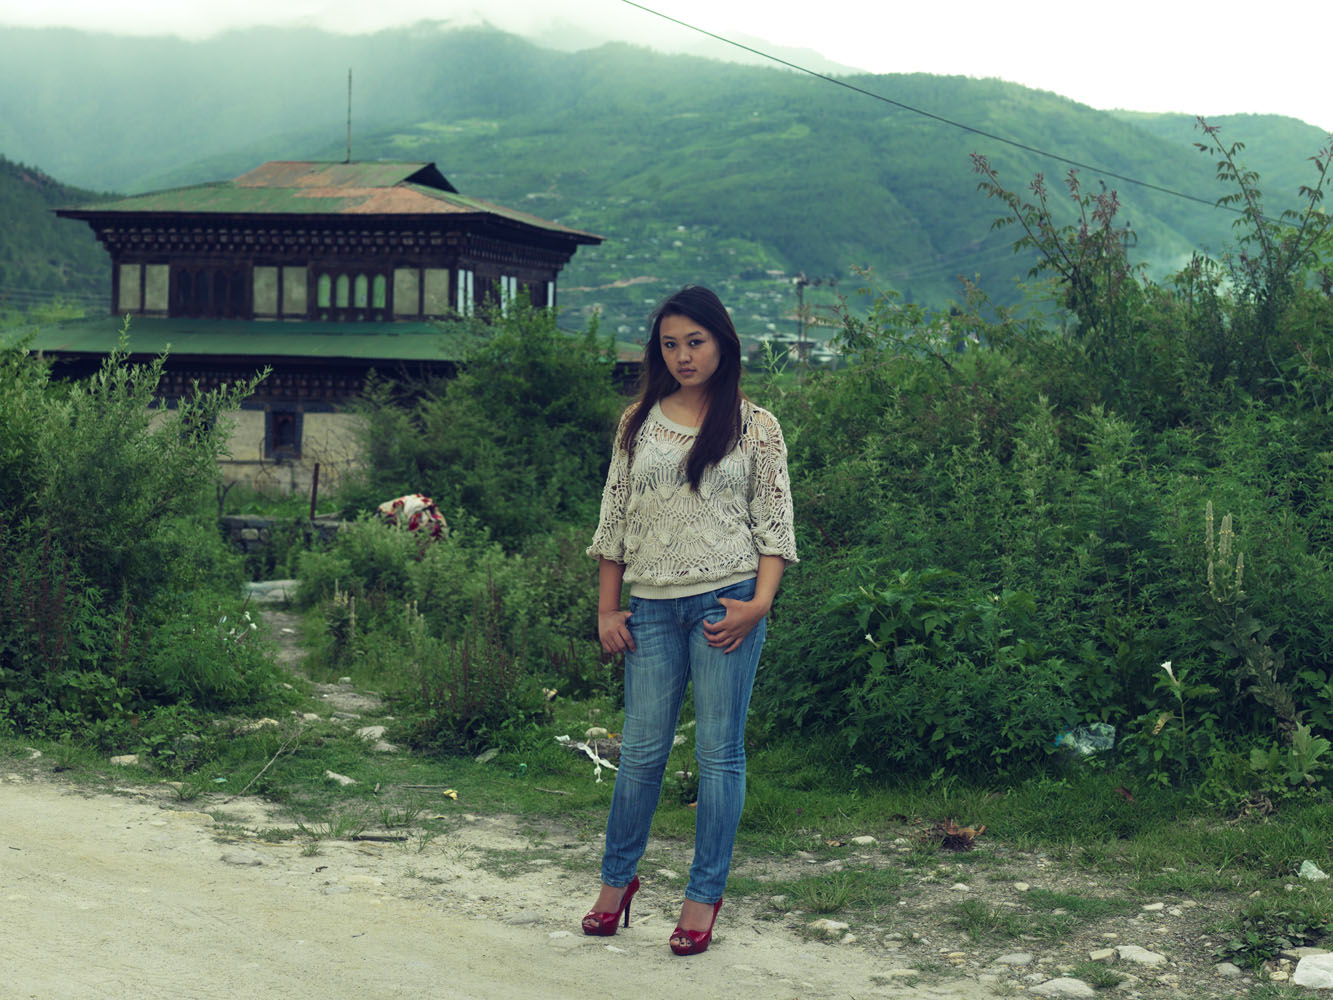 Many young Bhutanese, like Tshering, in Paro, now prefer modern clothing to the traditional robes.